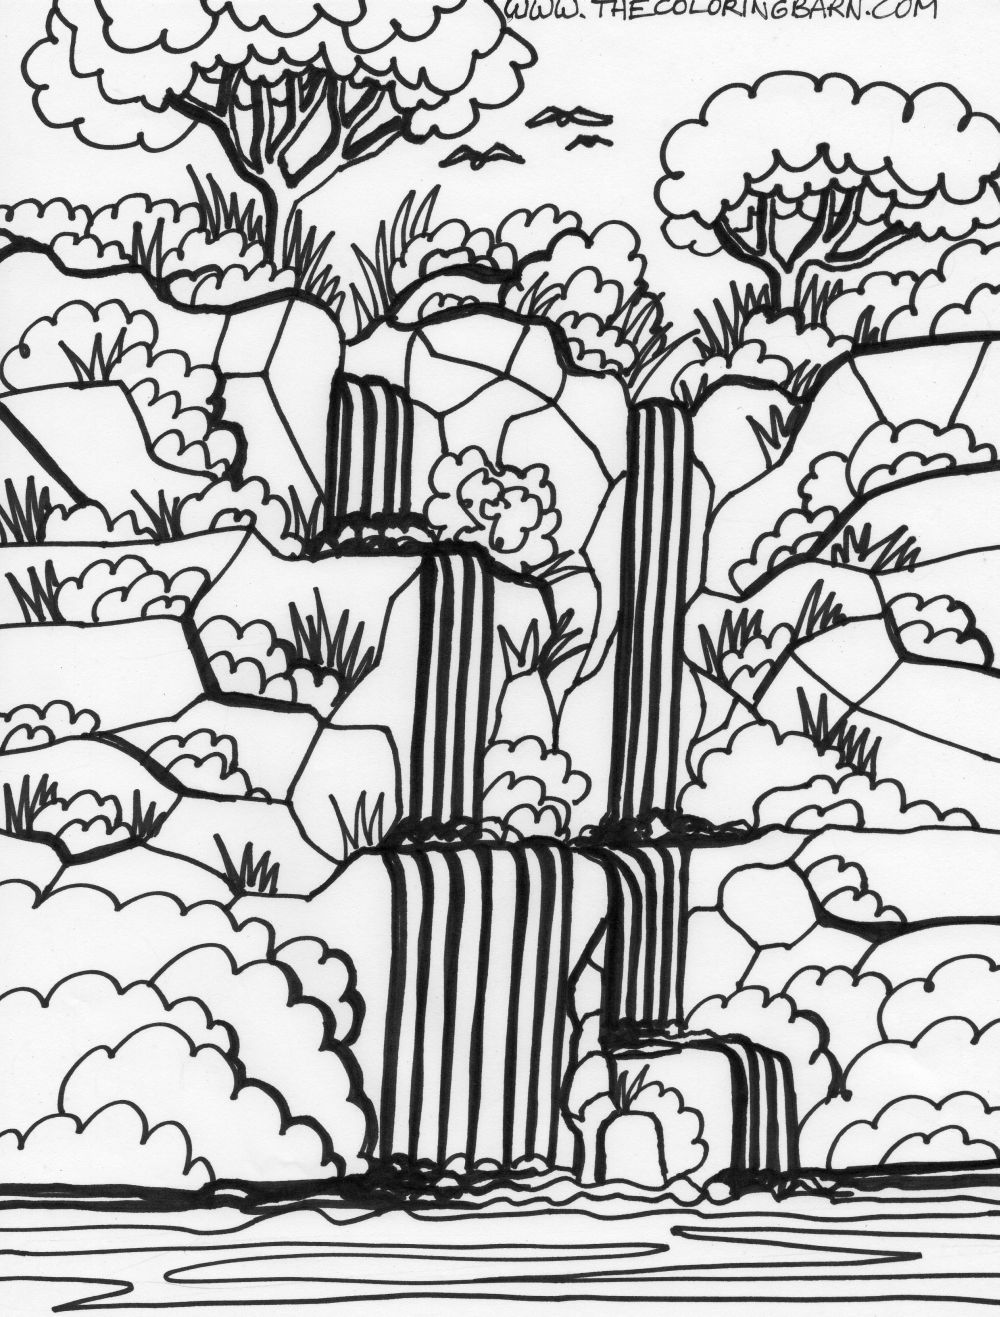 rainforest tree coloring page rainforest trees coloring pages coloring pages page rainforest coloring tree